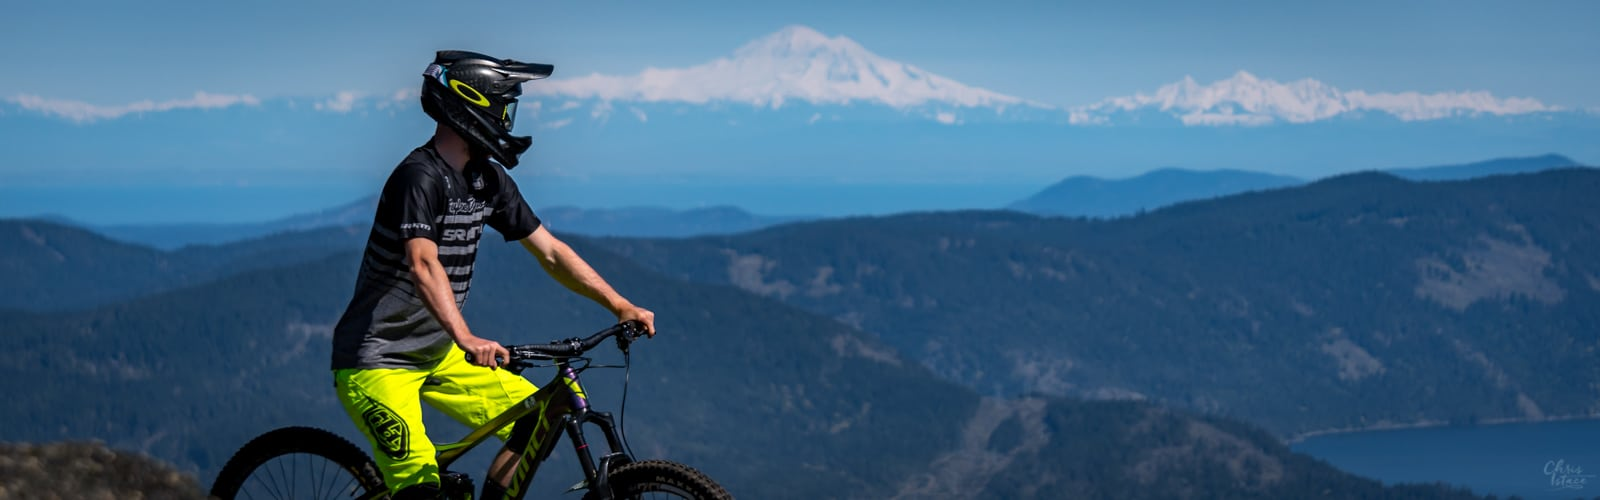 Trevor Thew – Putting Cowichan Valley Mountain Biking on the Map